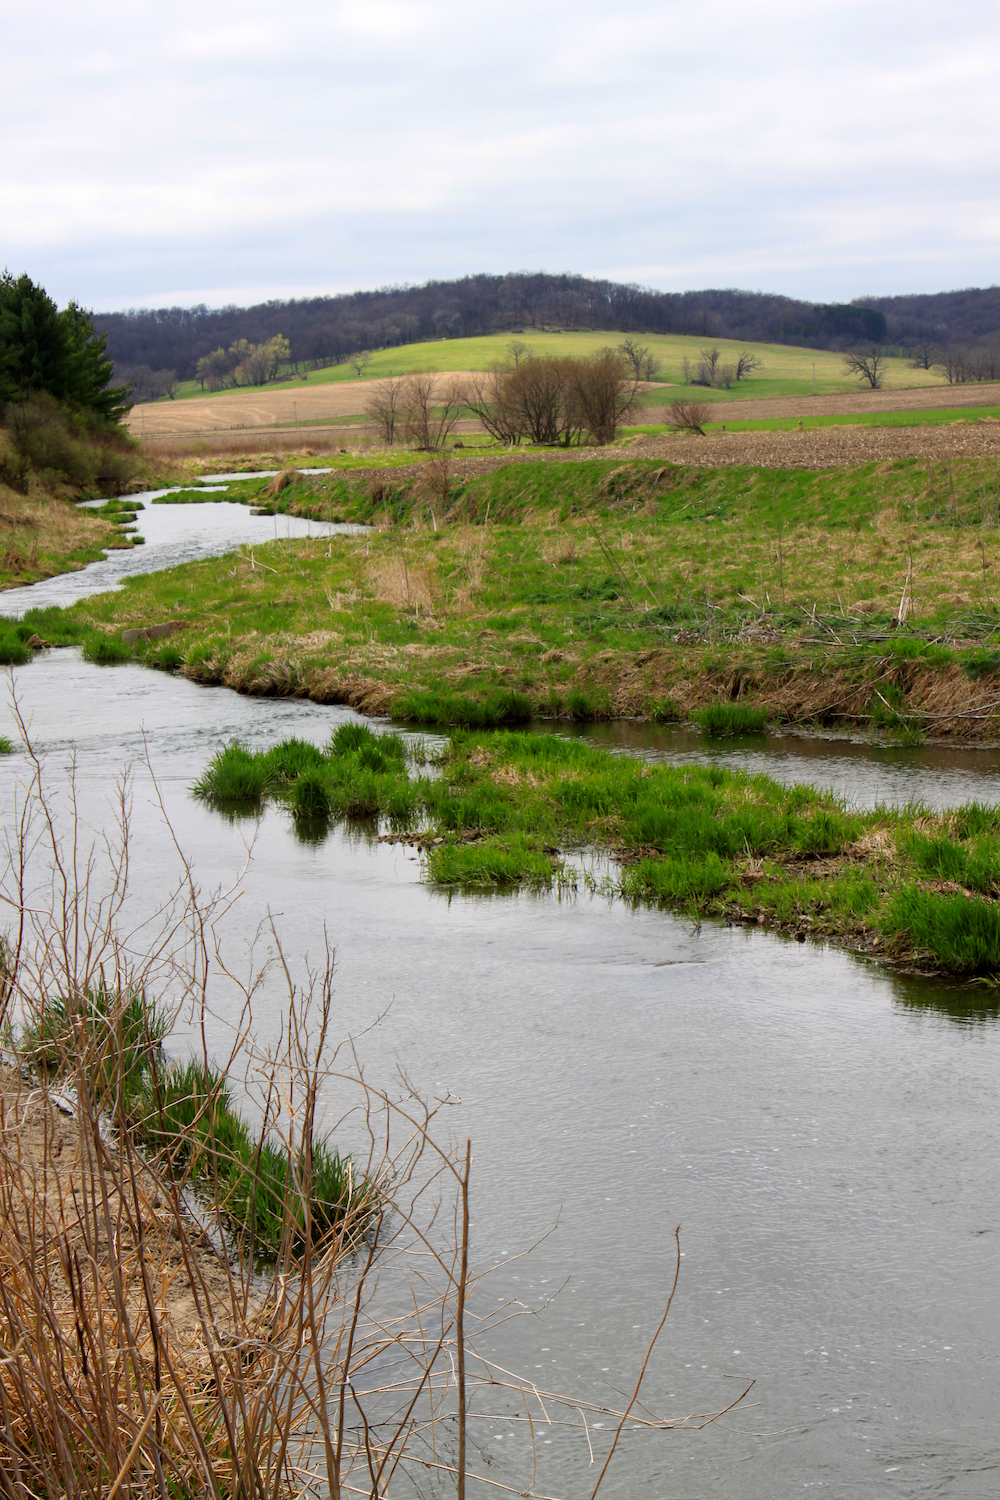 A stream flows over a early spring landscape with agricultural fields and a forest of trees in the background against a gray sky.